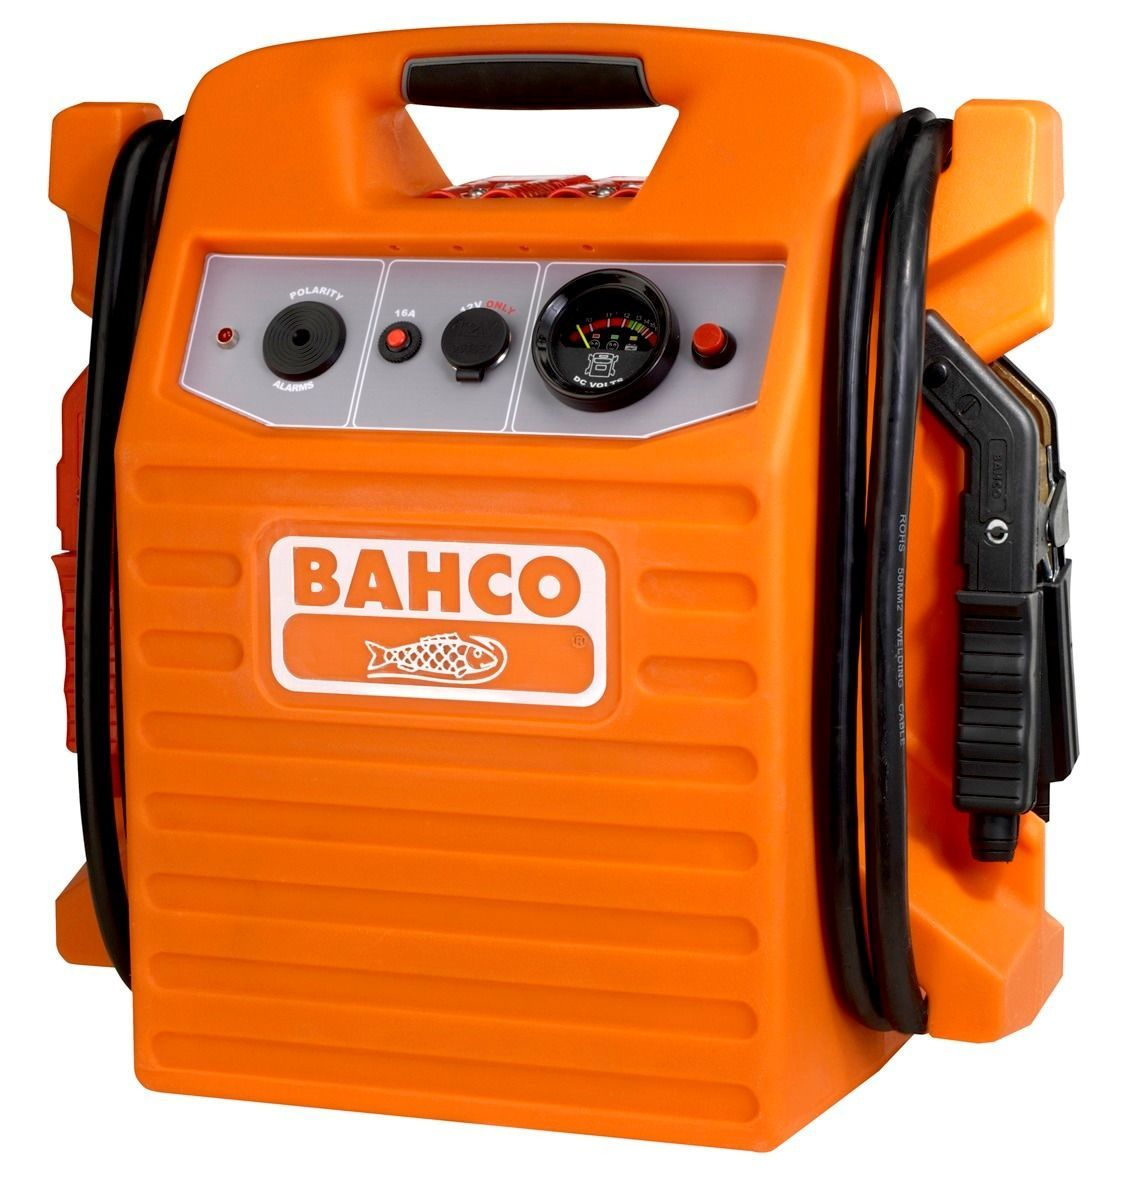 booster batterie bahco bba1224-1700